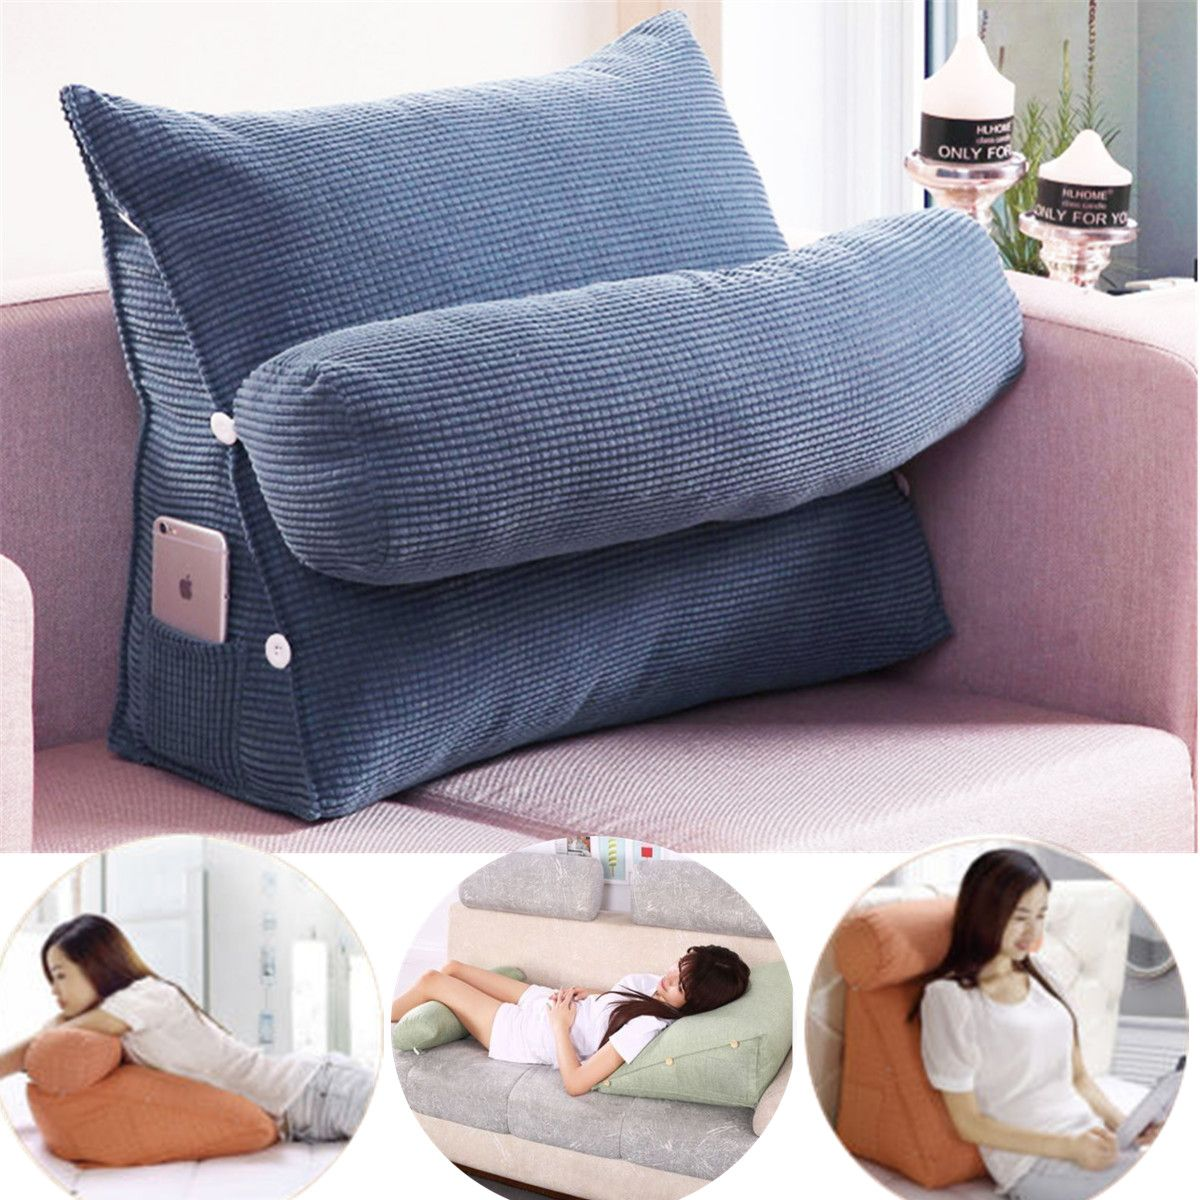 Adjustable Back Wedge Cushion Pillow Sofa Bed Office Chair Rest Waist Neck Support Best Gift Walmart Com In 2020 Cushions On Sofa Sofa Pillows Sofa Bed Office